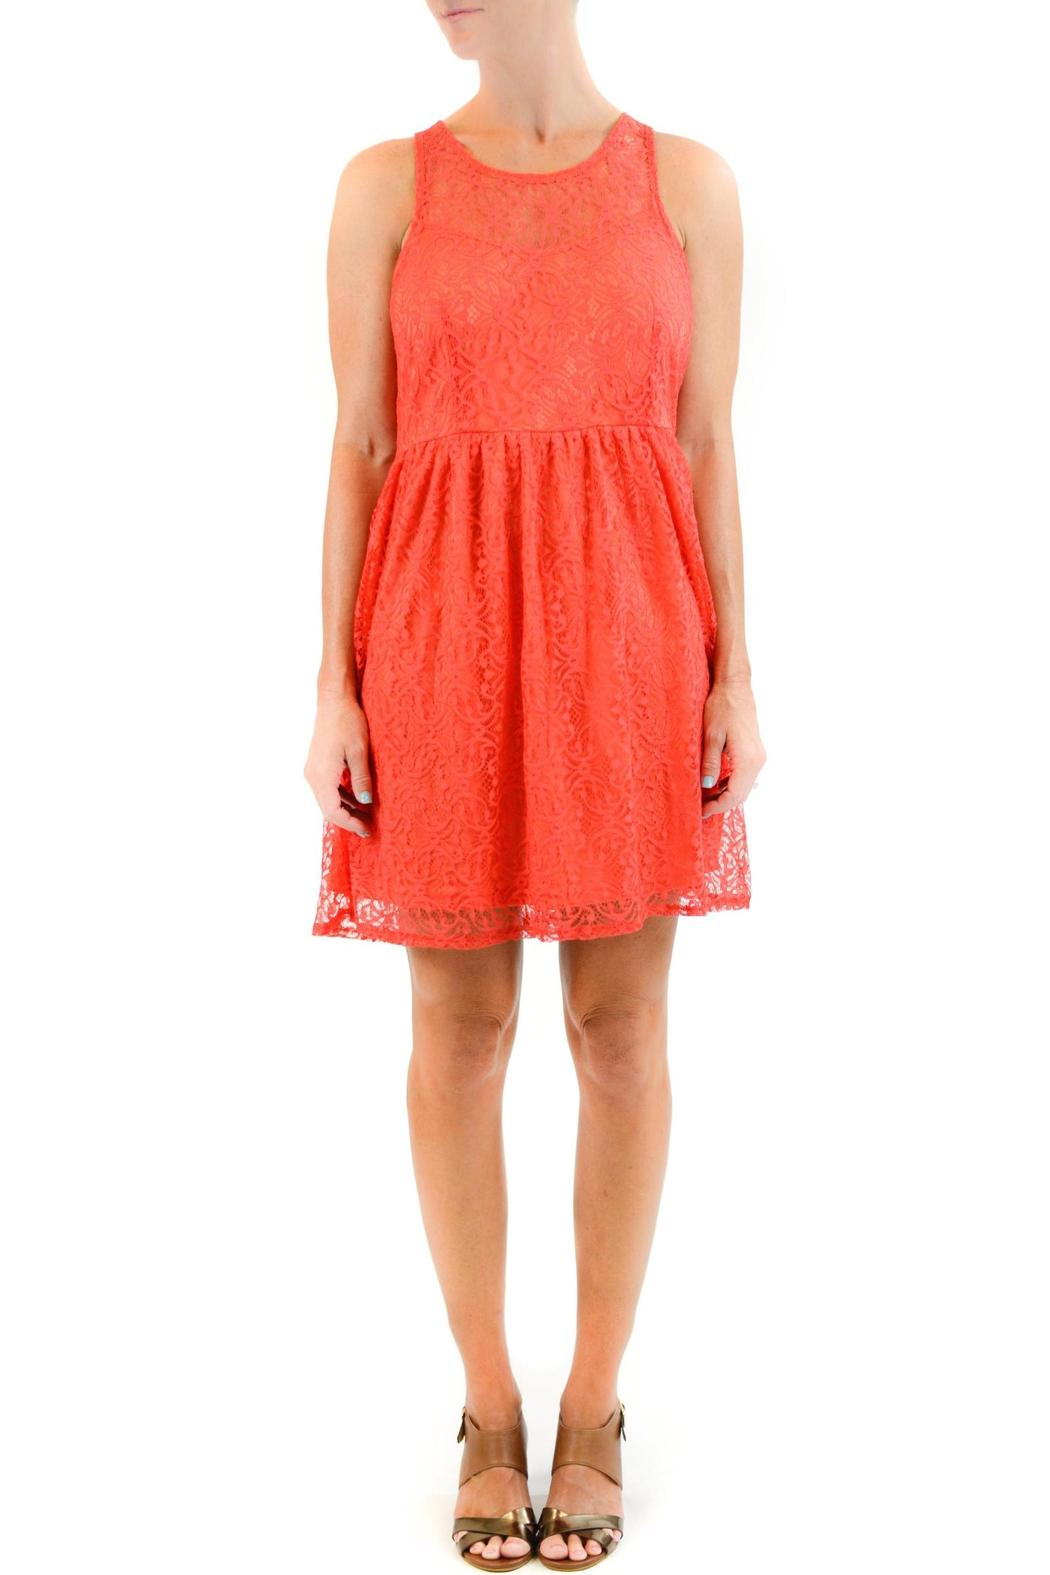 Aryeh Red Lace Dress from Indiana by Flutter — Shoptiques